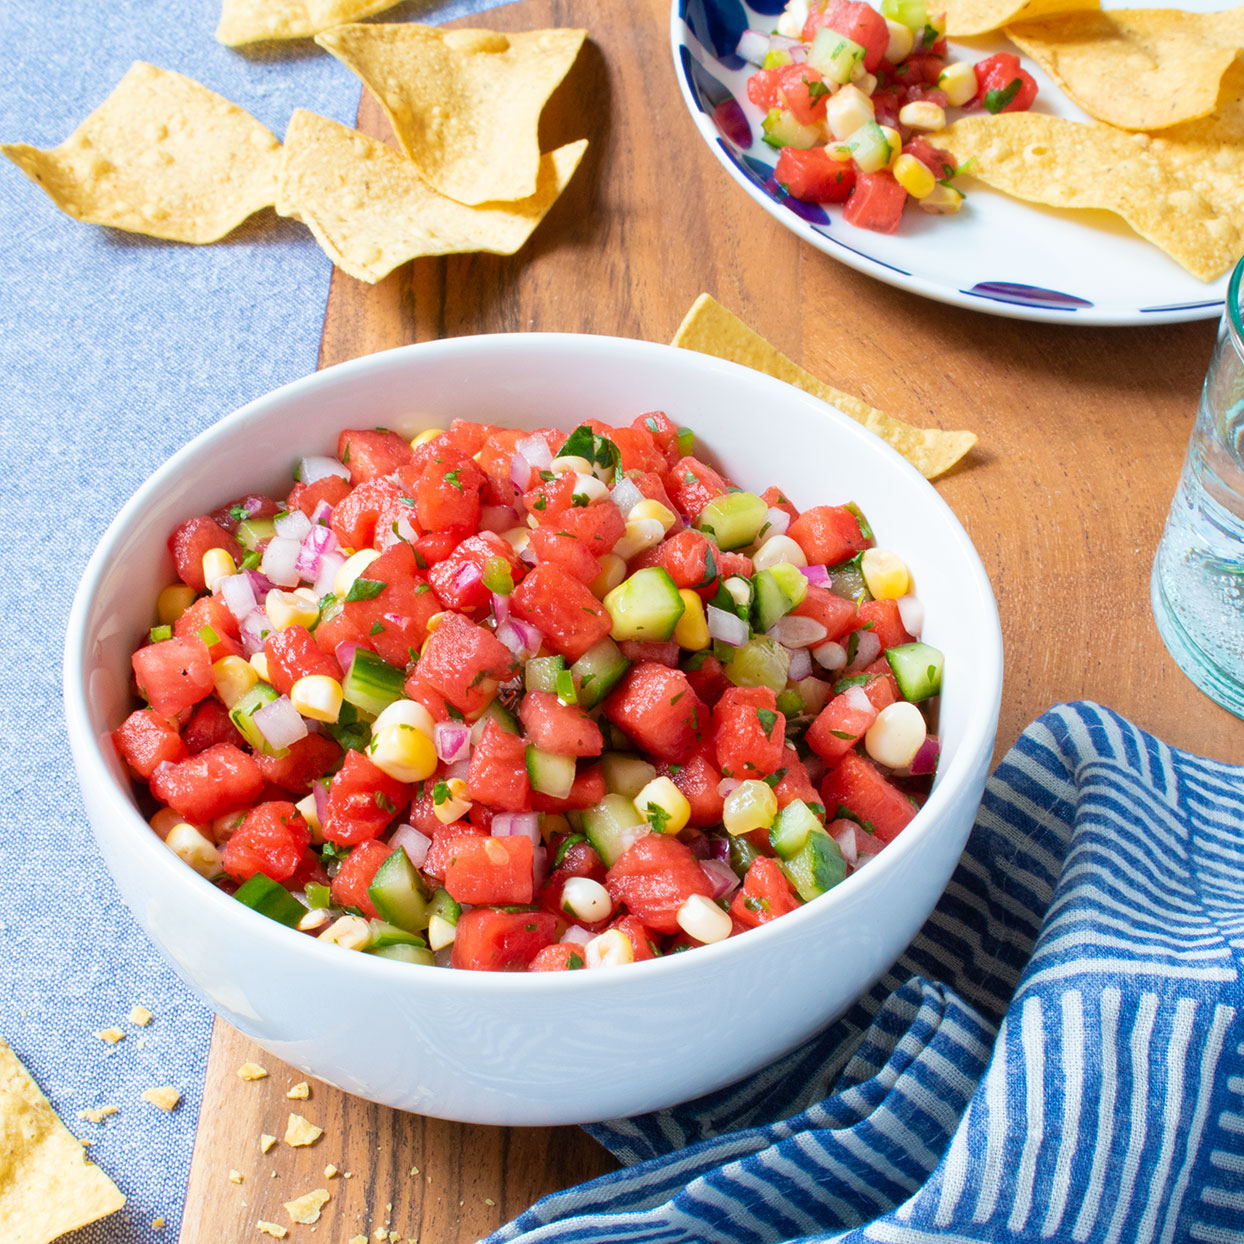 Watermelon, Cucumber & Corn Salsa Allrecipes Trusted Brands